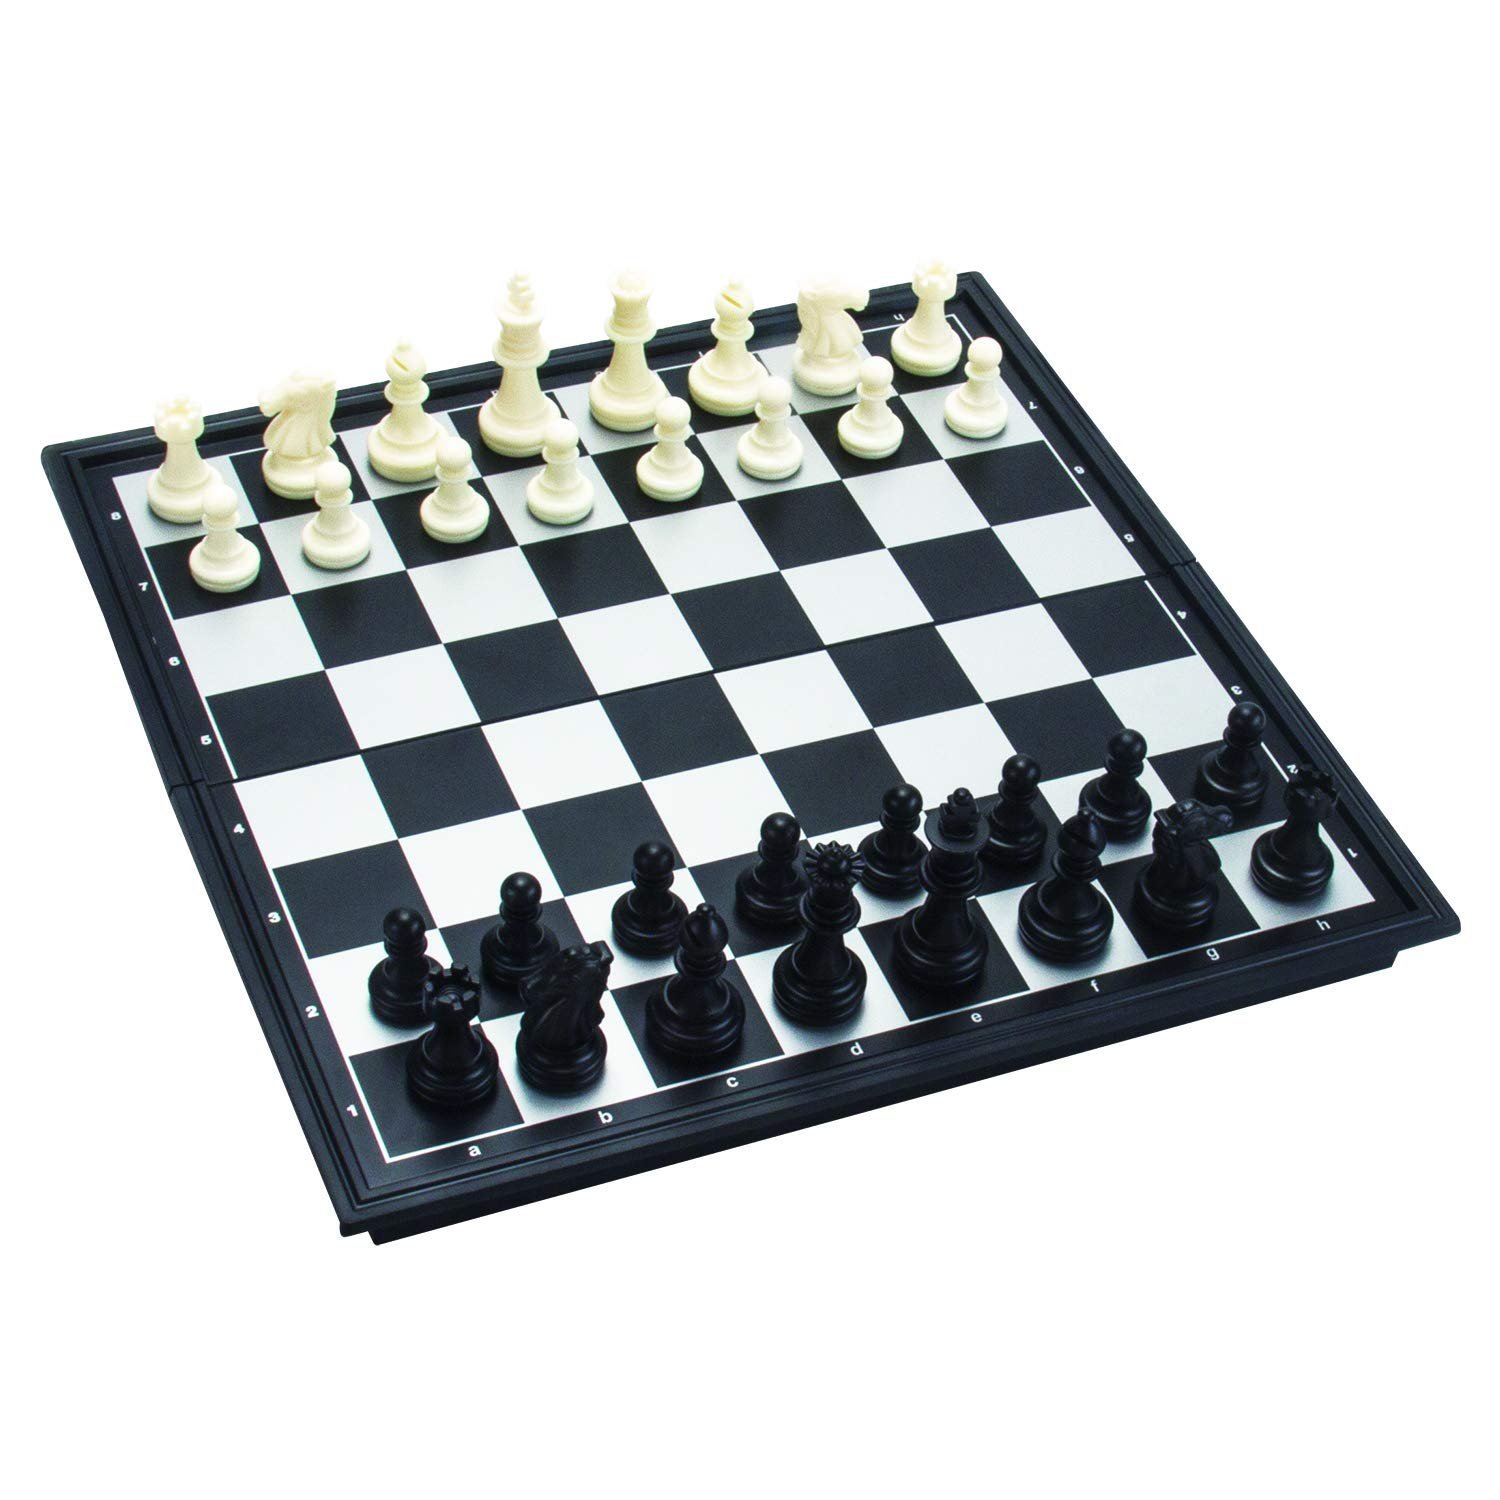 Amerous 10'' x 10'' Travel Magnetic International Chess Set with Folding Chess Board by AMEROUS